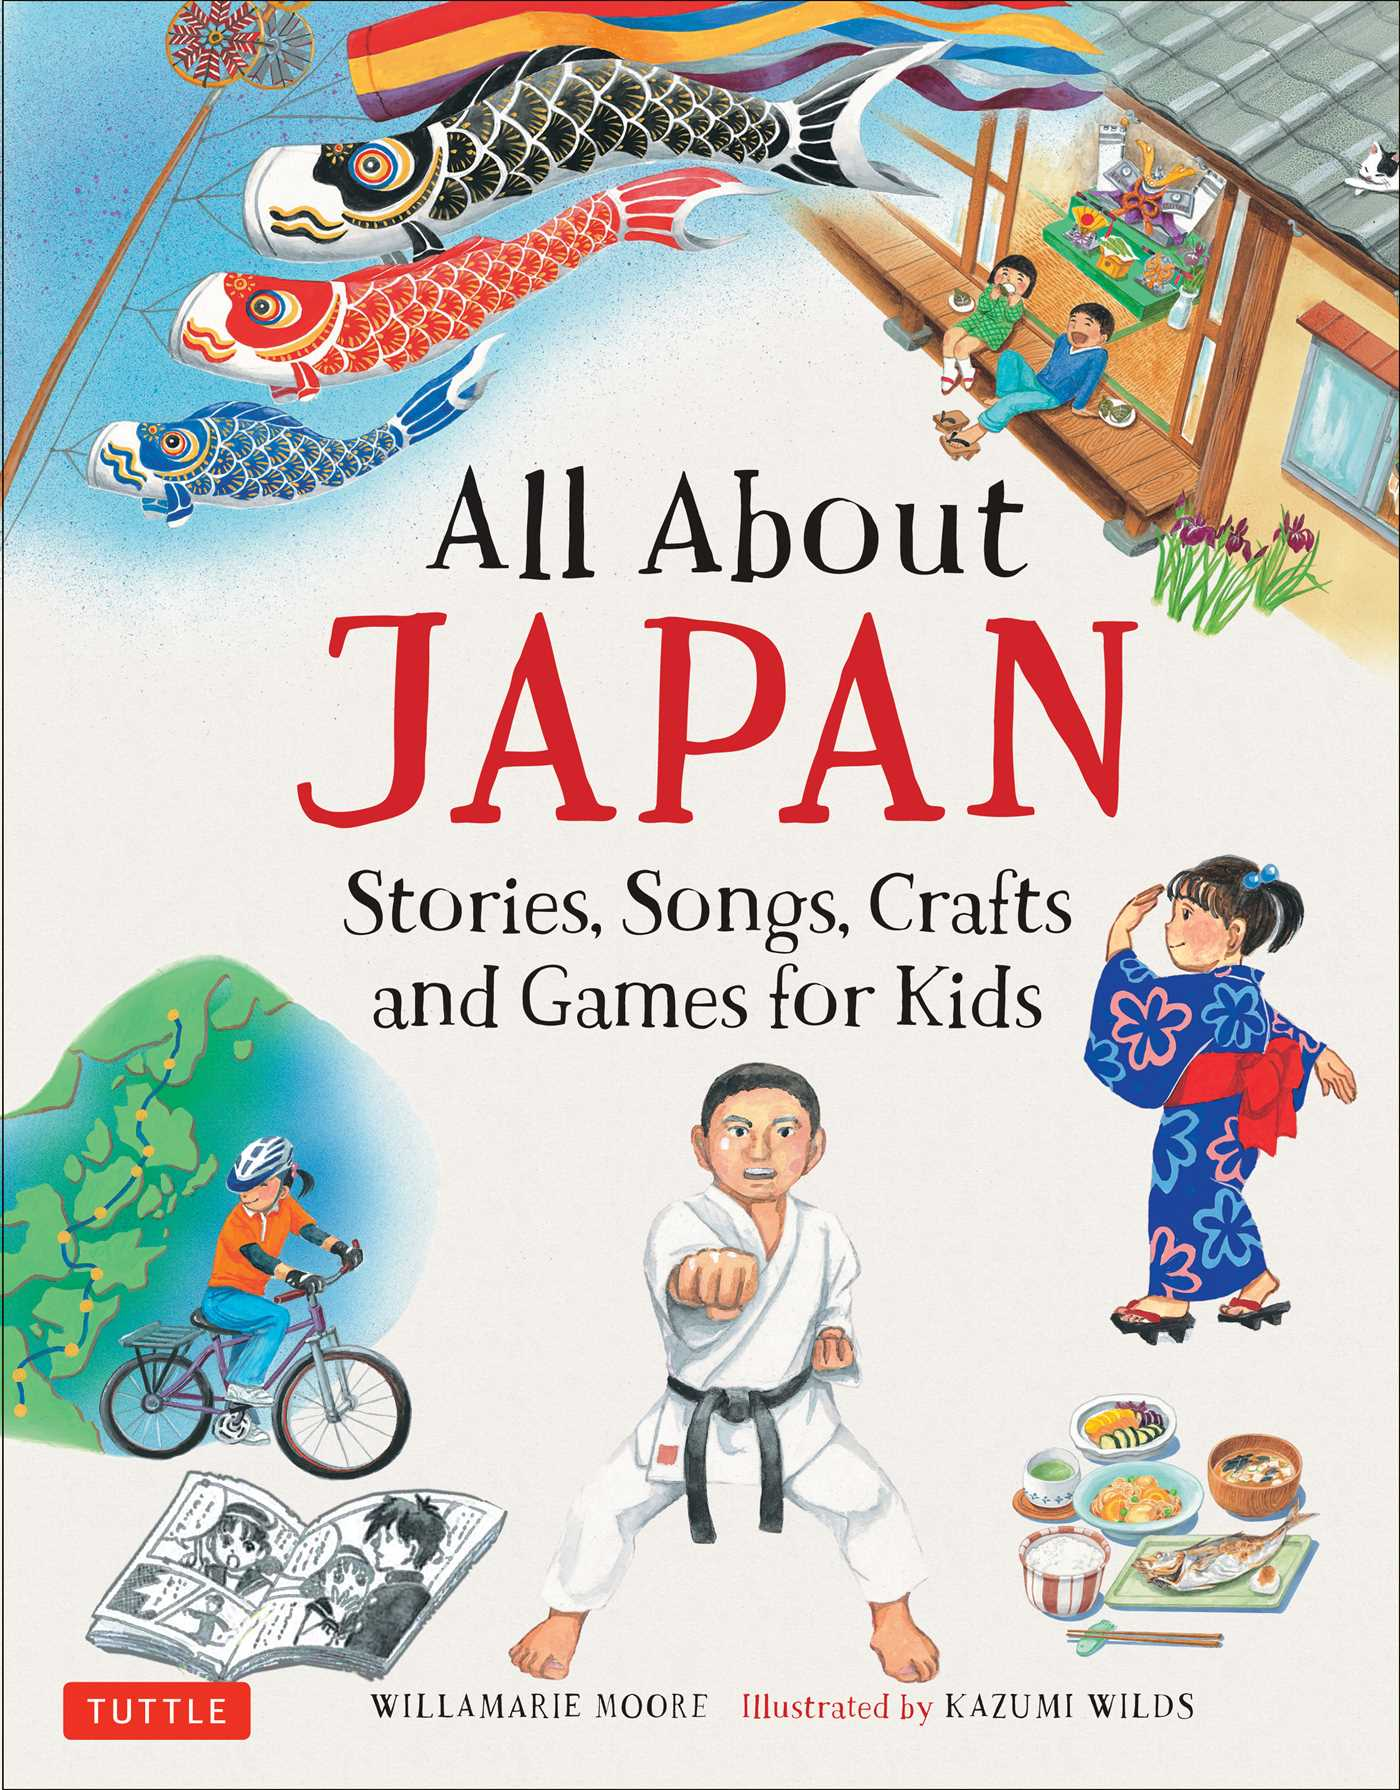 All about japan 9784805314401 hr